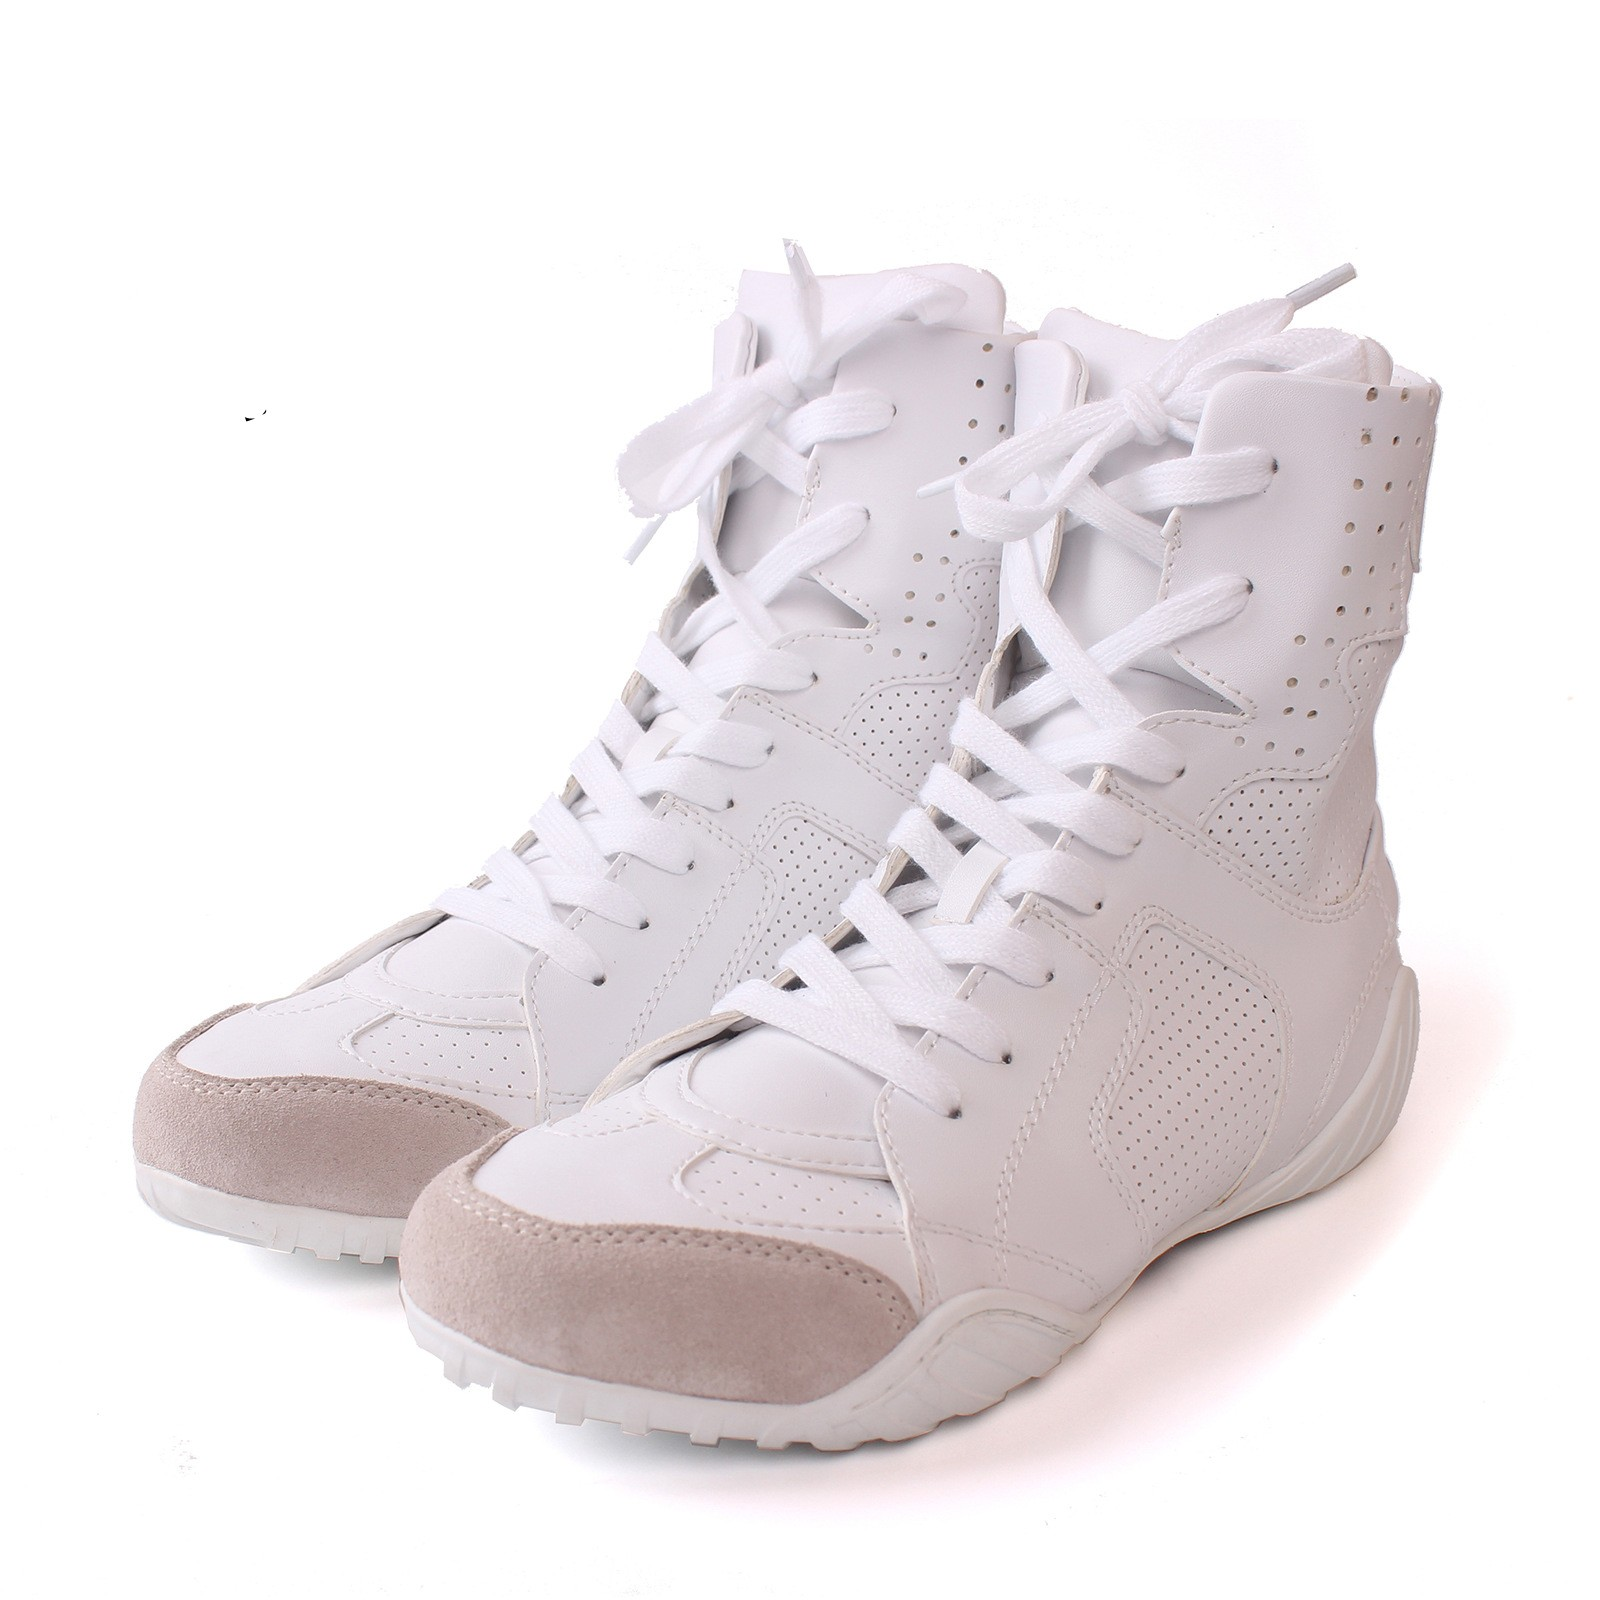 Fashion Sexy Style White Flats Heels Women's Boot Genuine Leather Lace Up Mid-Calf Boots Woman Cross Strap Boot Shoes SMYCN-1069 double buckle cross straps mid calf boots